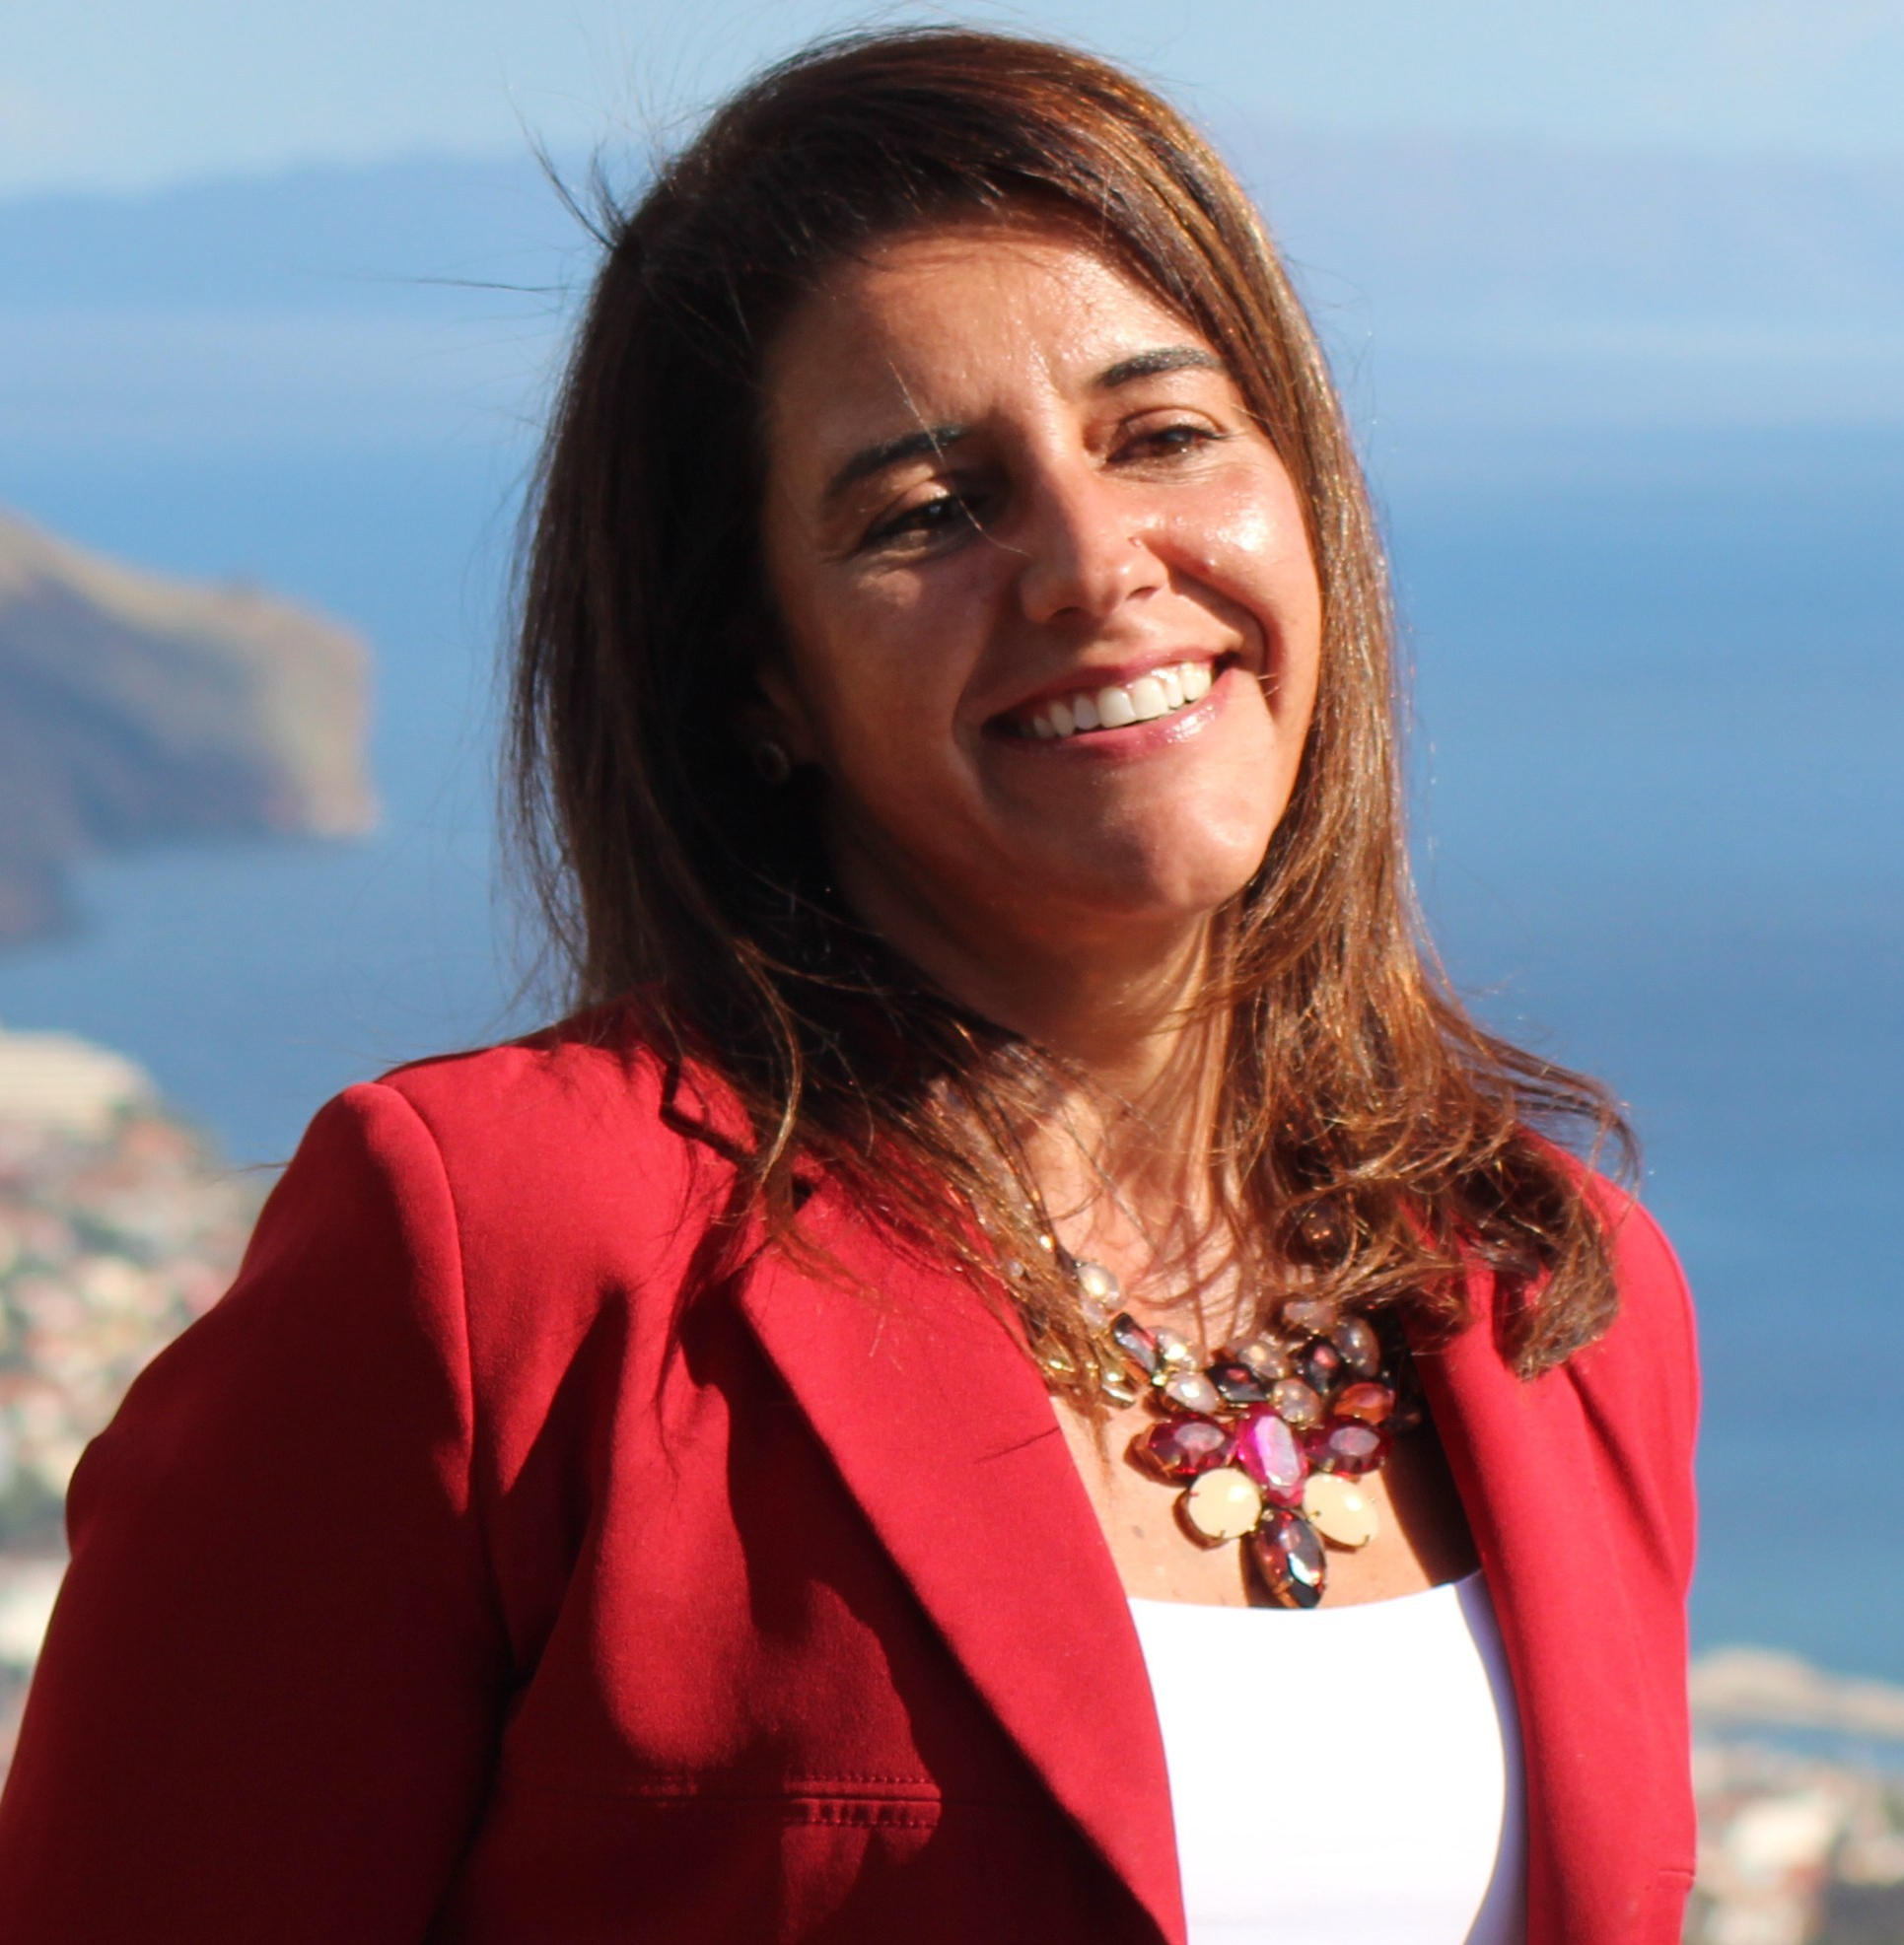 Qualified and Professional Guide; Tour Guide; Tourist Guide; Certified Tourism Guides, Official list of Tourism Information Professionals of the Autonomous Region of Madeira, in accordance with the ordinance nr 61/2017; visitmadeira.pt; SNATTI; Walking Tours, Cultural Tours, Sightseeing Tours; Bust Tours, Coach Tours, Best Tour Guides, Top Tour Guides, Madeira; Portugal